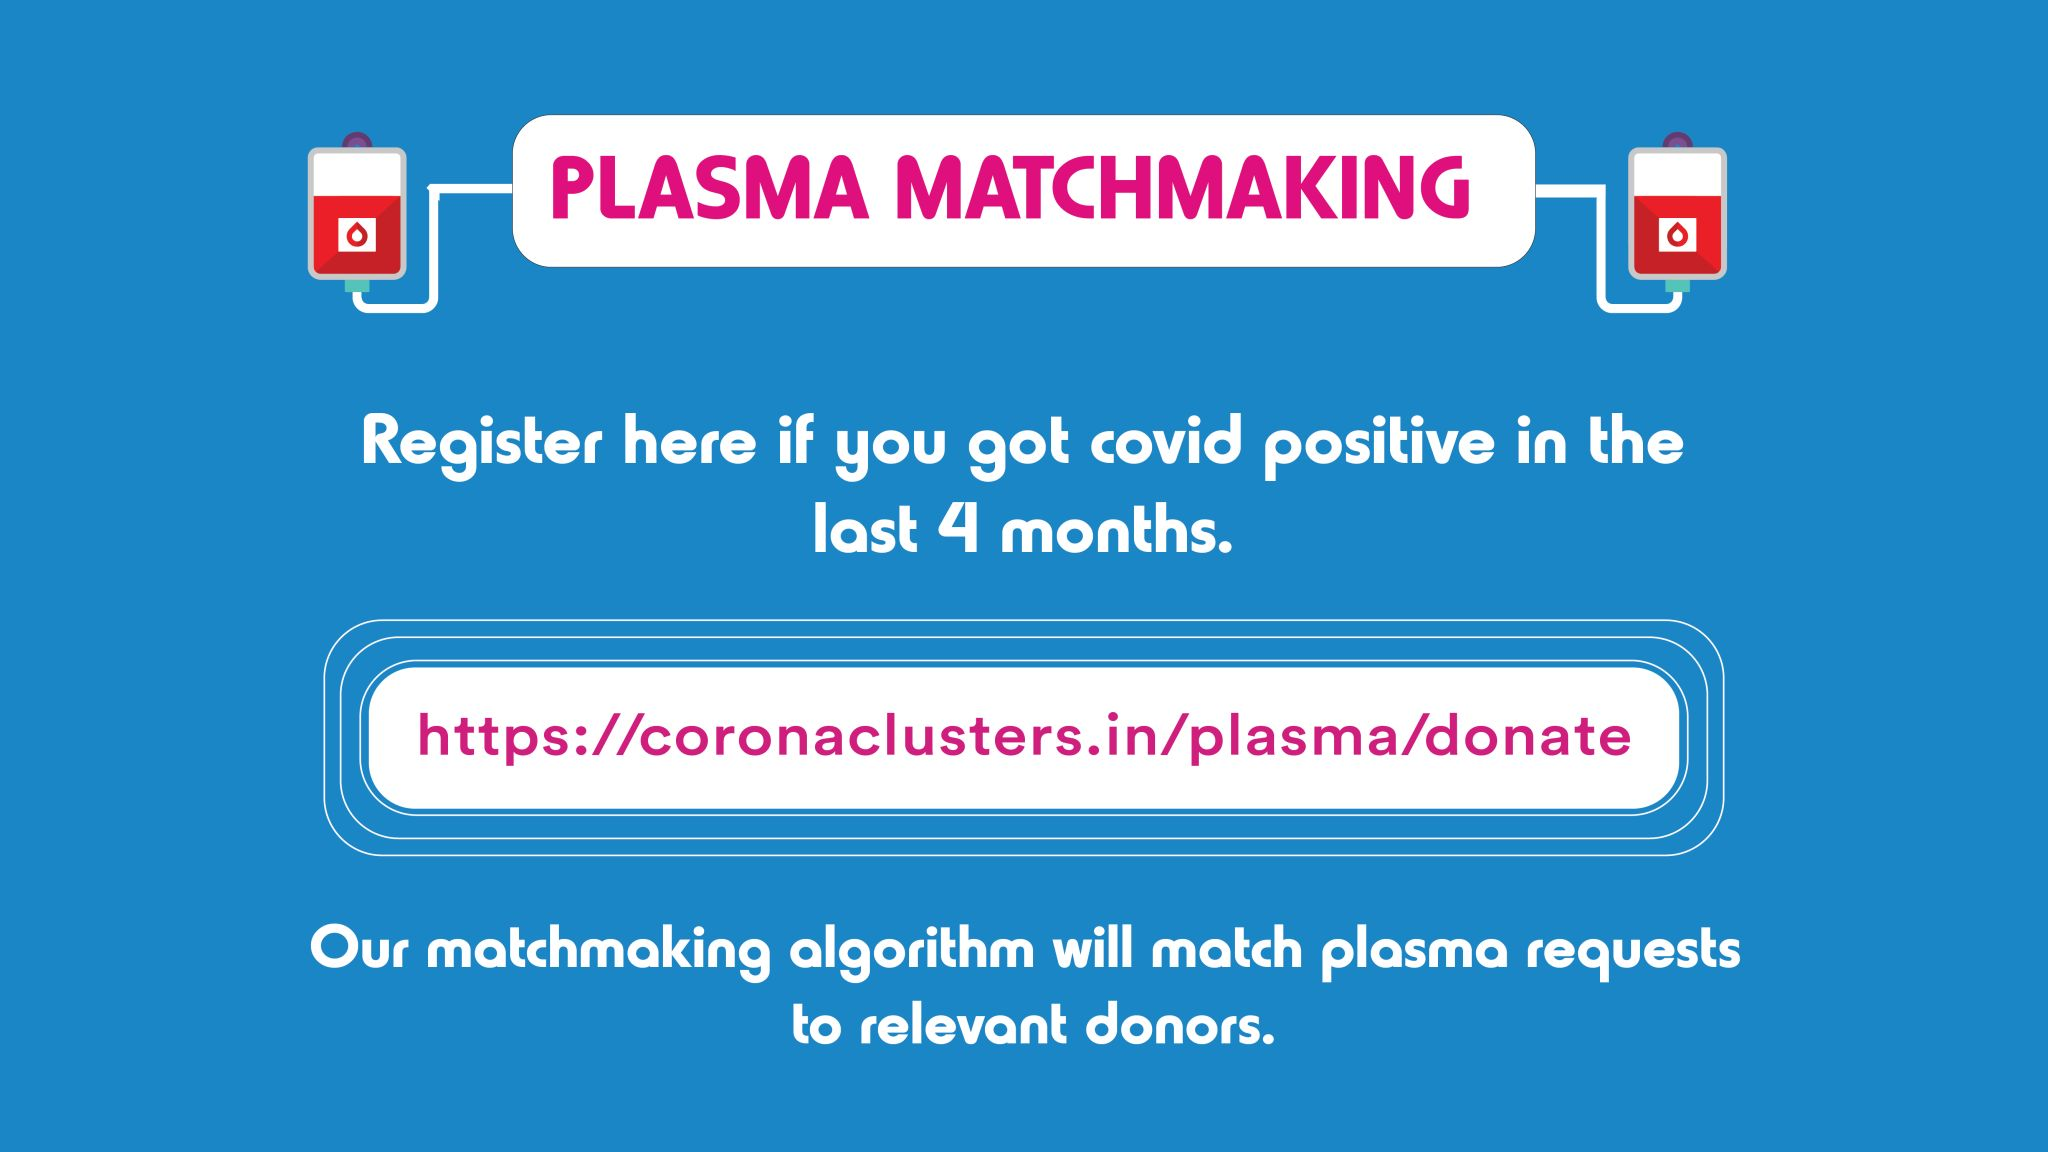 TrulyMadly Launches Plasma Matchmaking Service